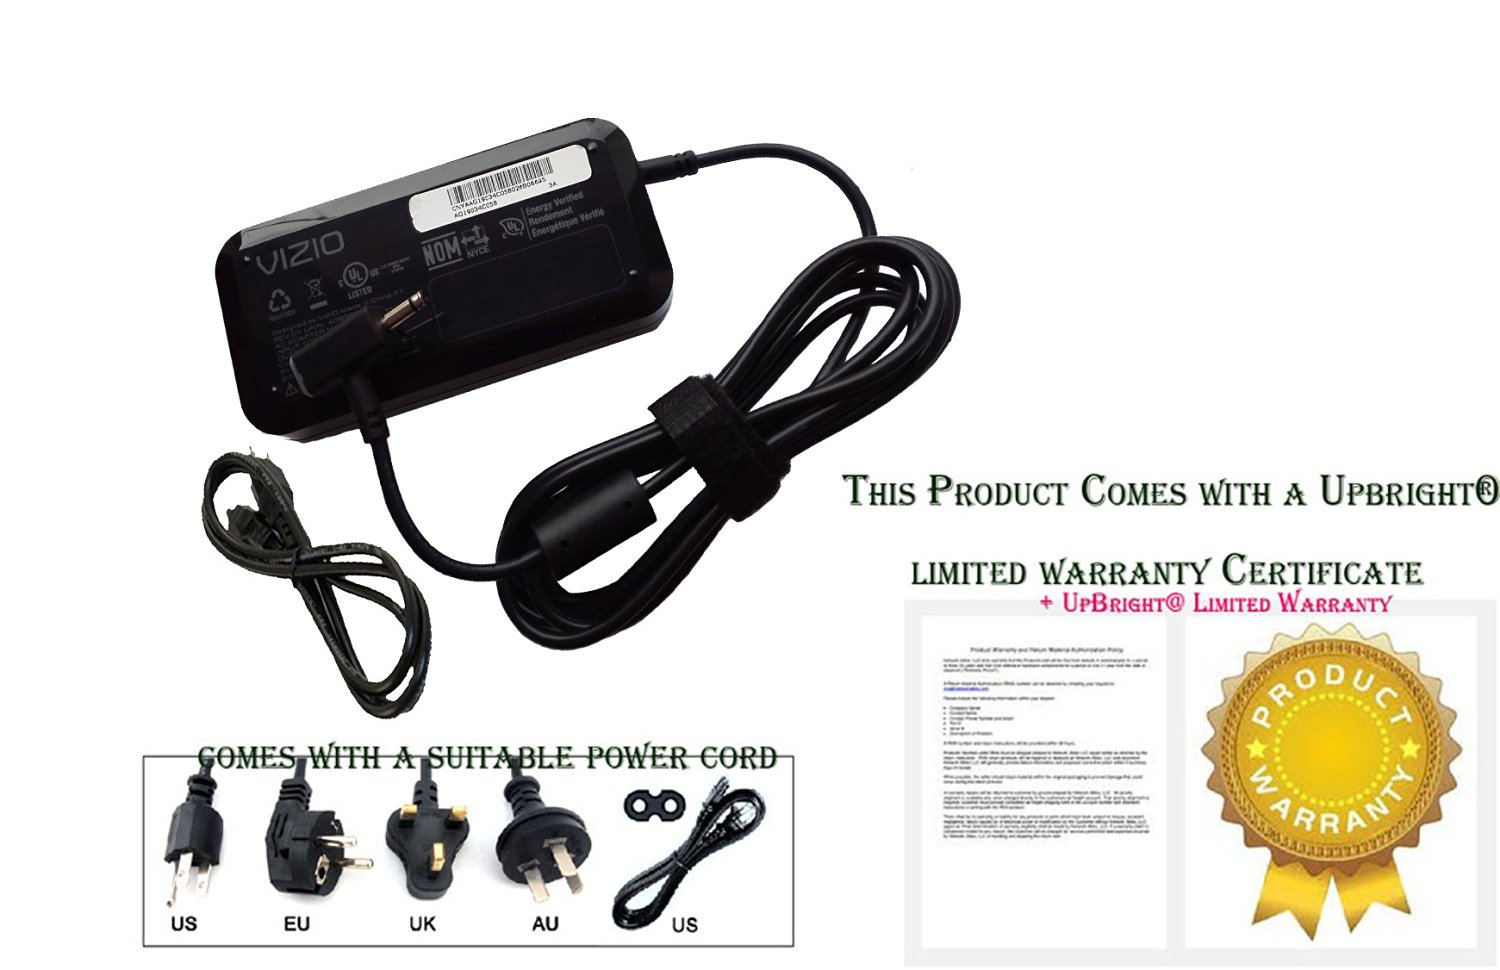 UpBright NEW Genuine OEM Original AC / DC Adapter For Vizio Thin U0026 Light  CT15 CT15